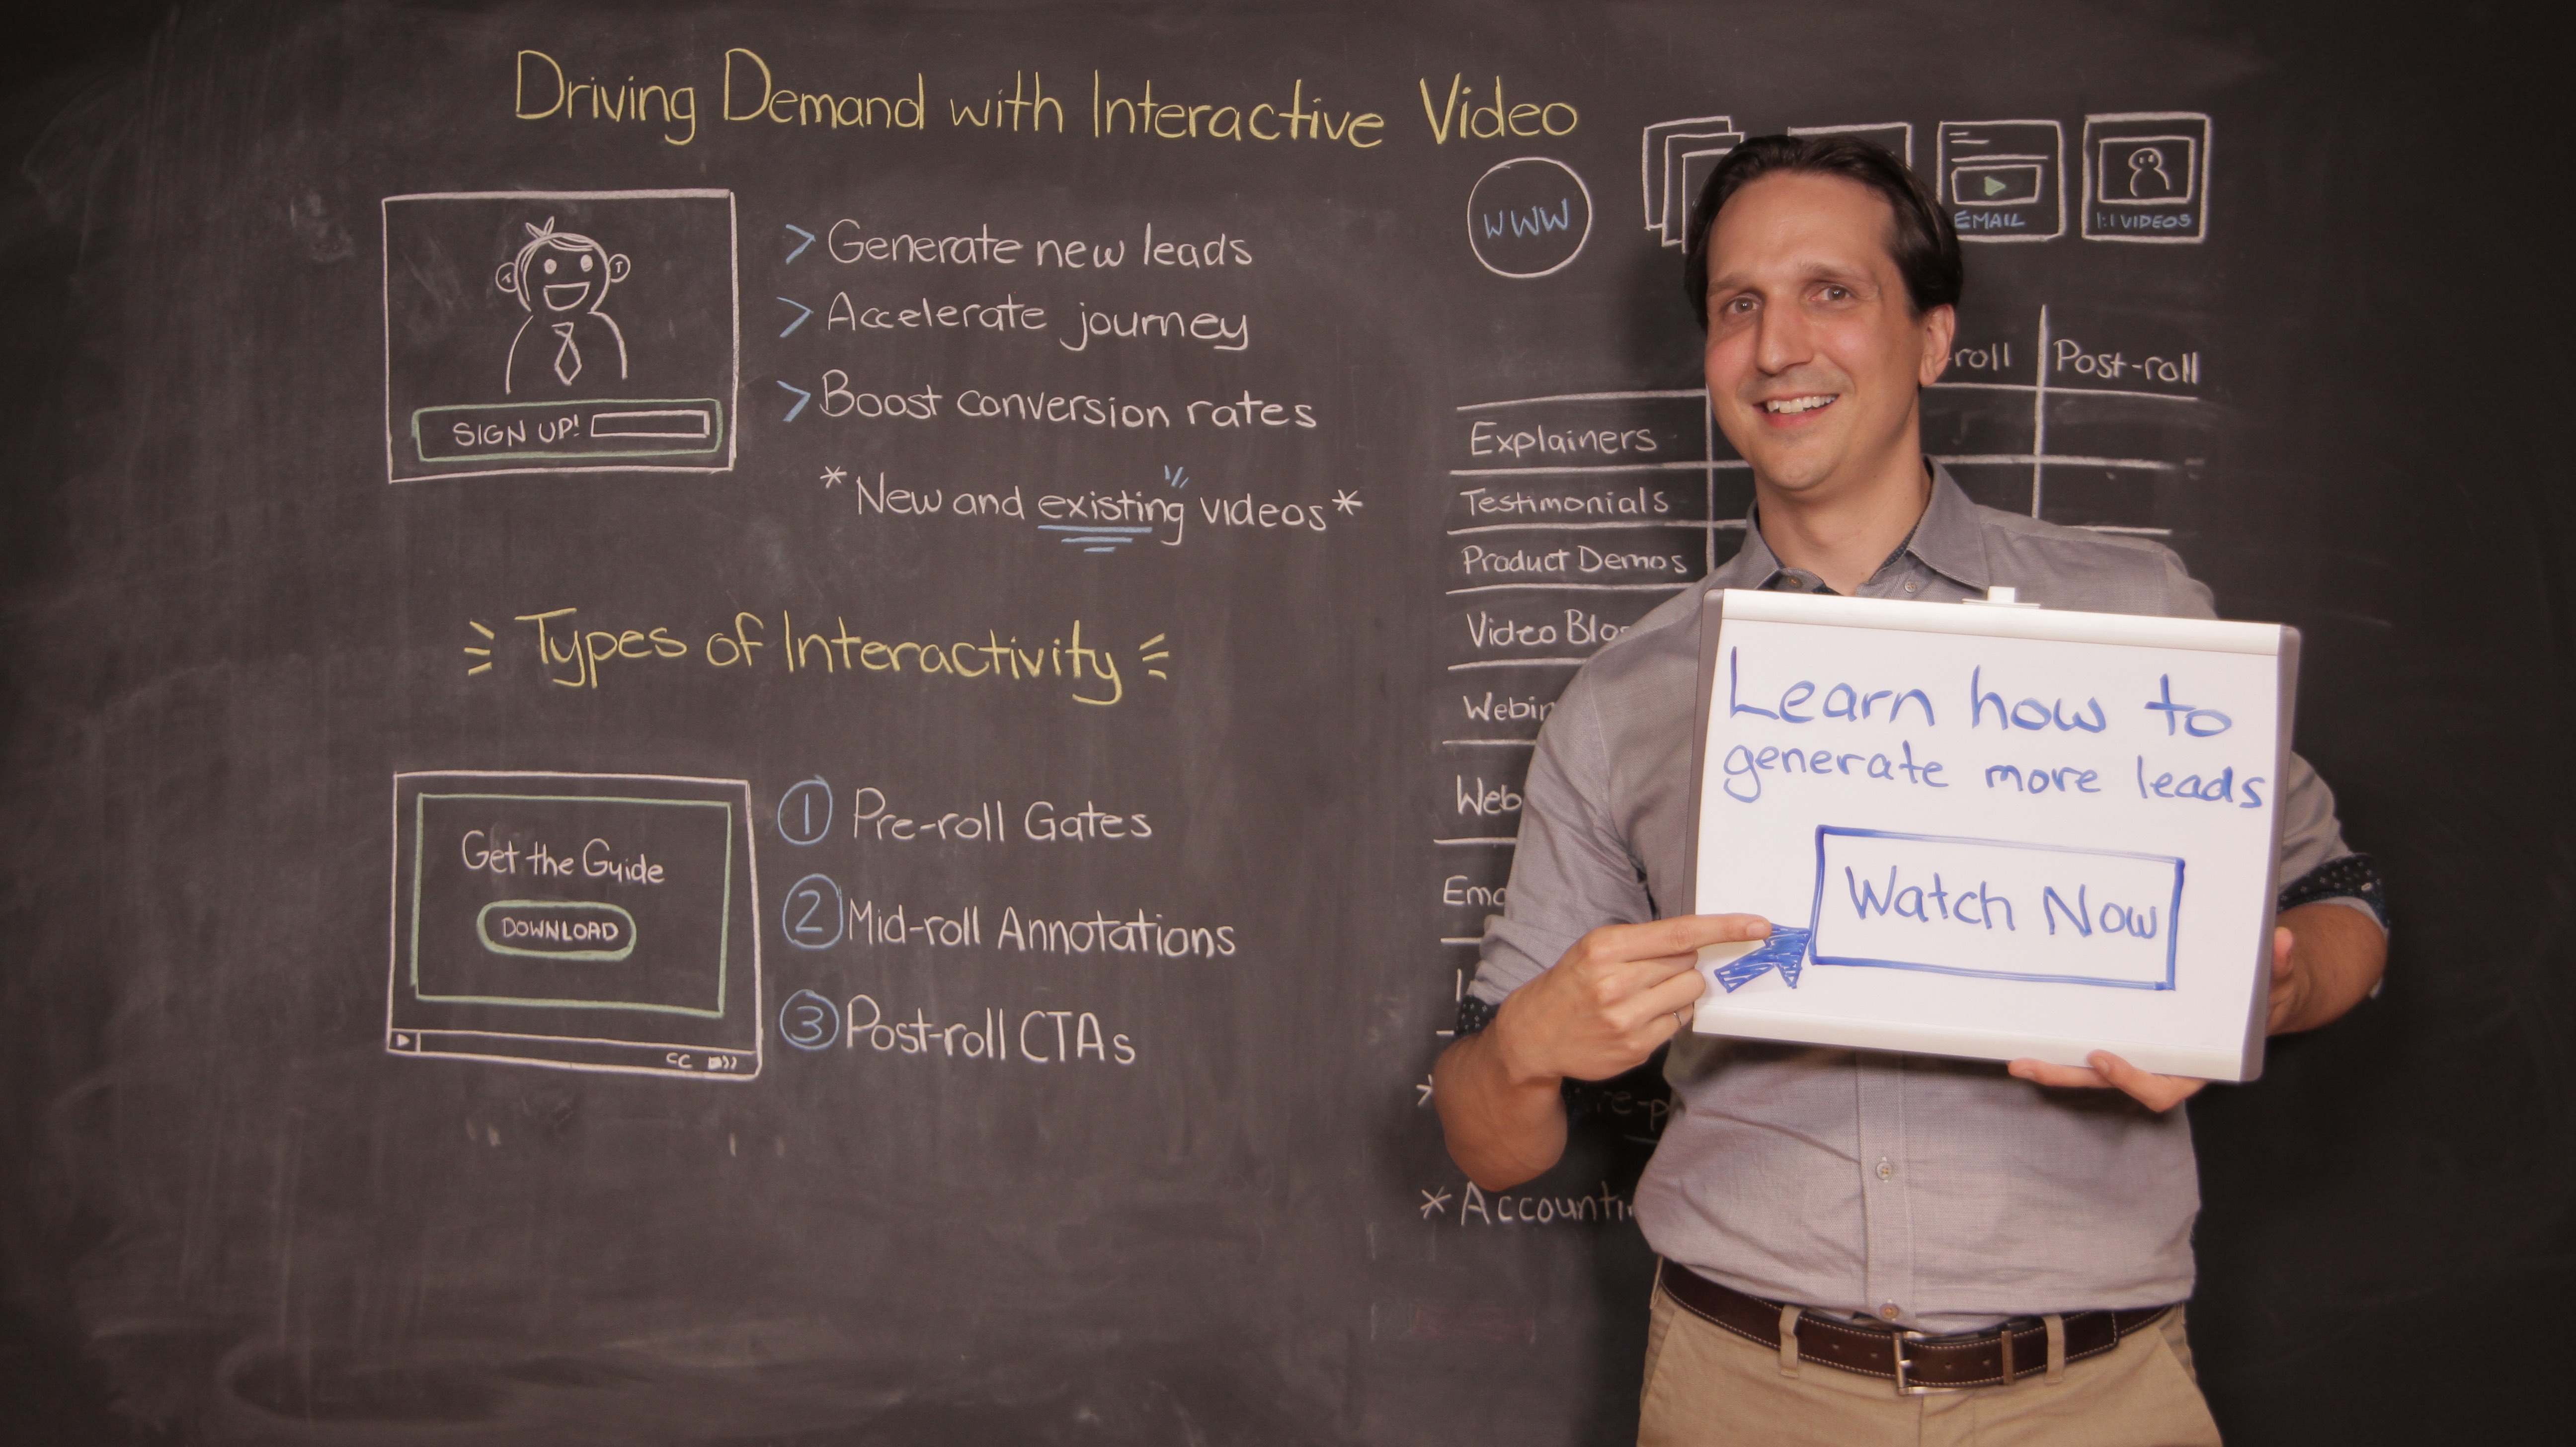 Chalk Talks Driving Demand with Interactive Video